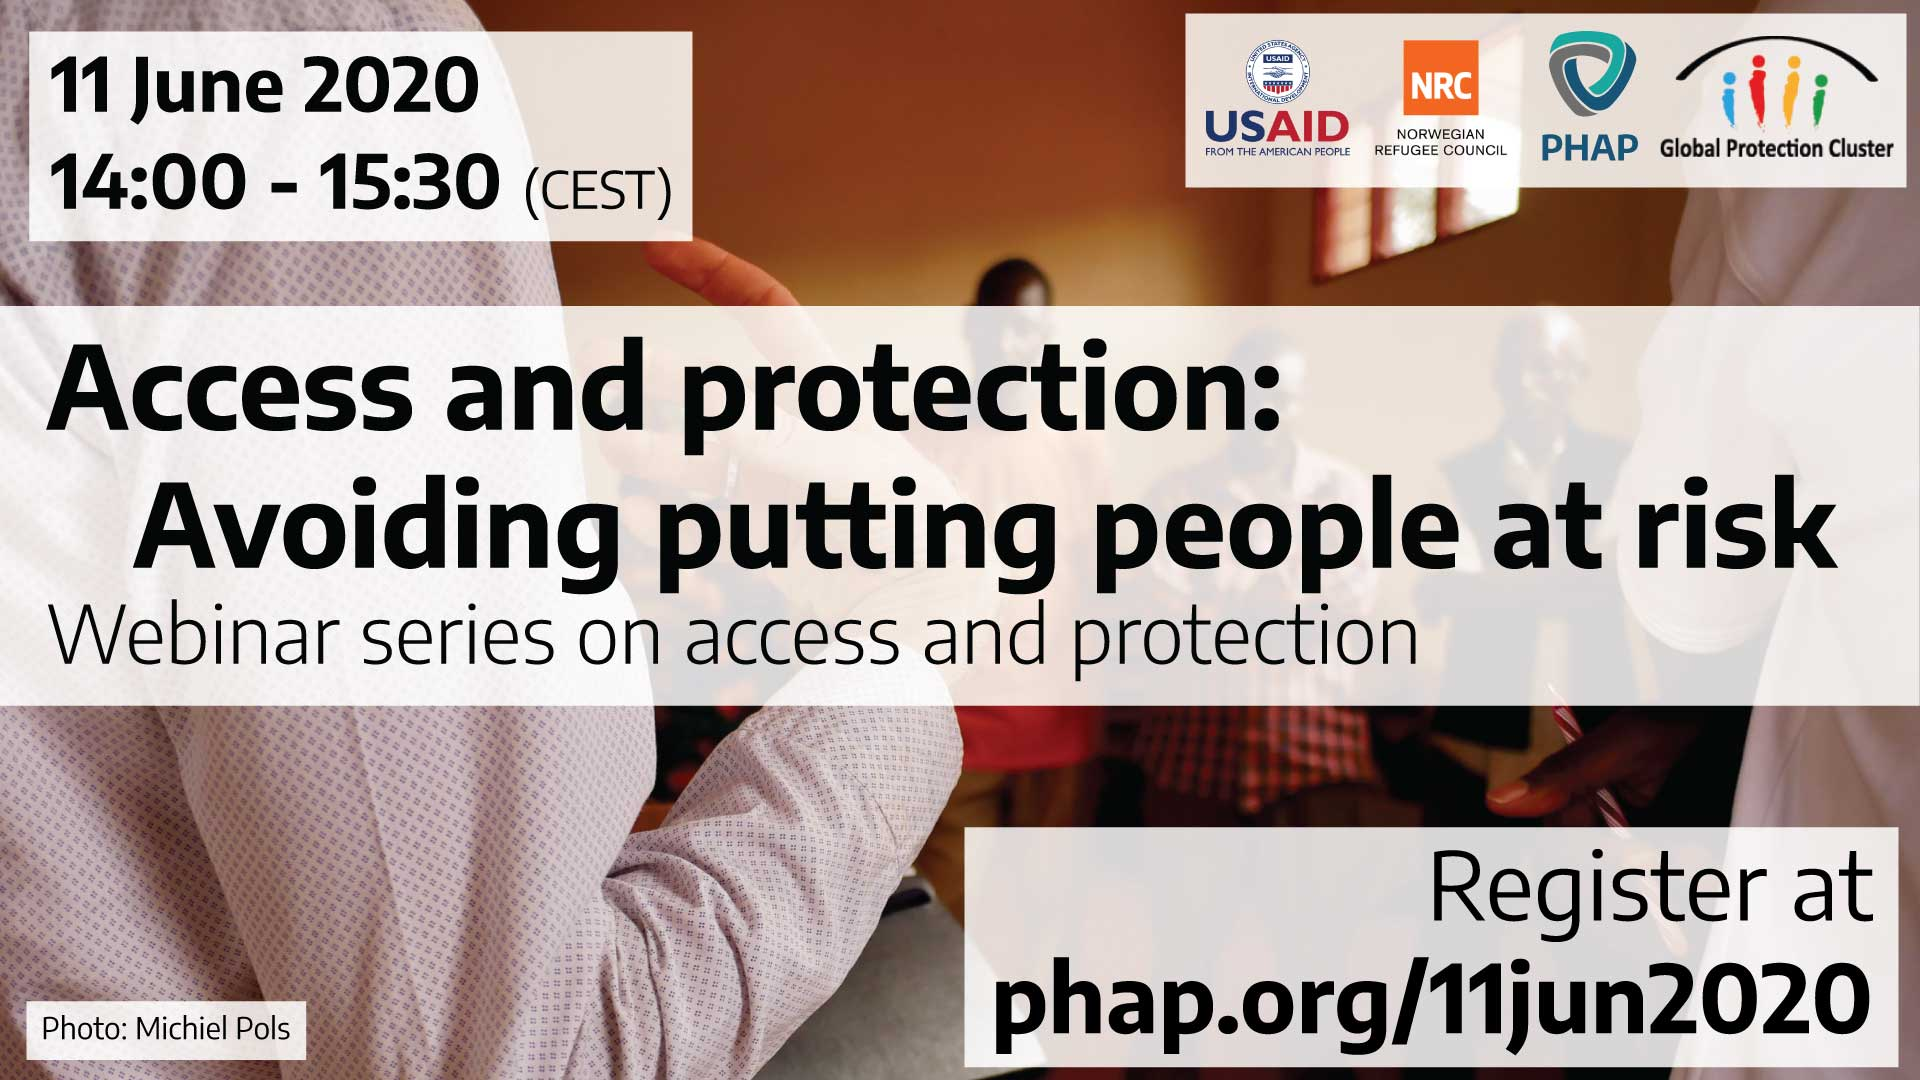 Banner for the webinar Access and protection: Avoiding putting people at risk